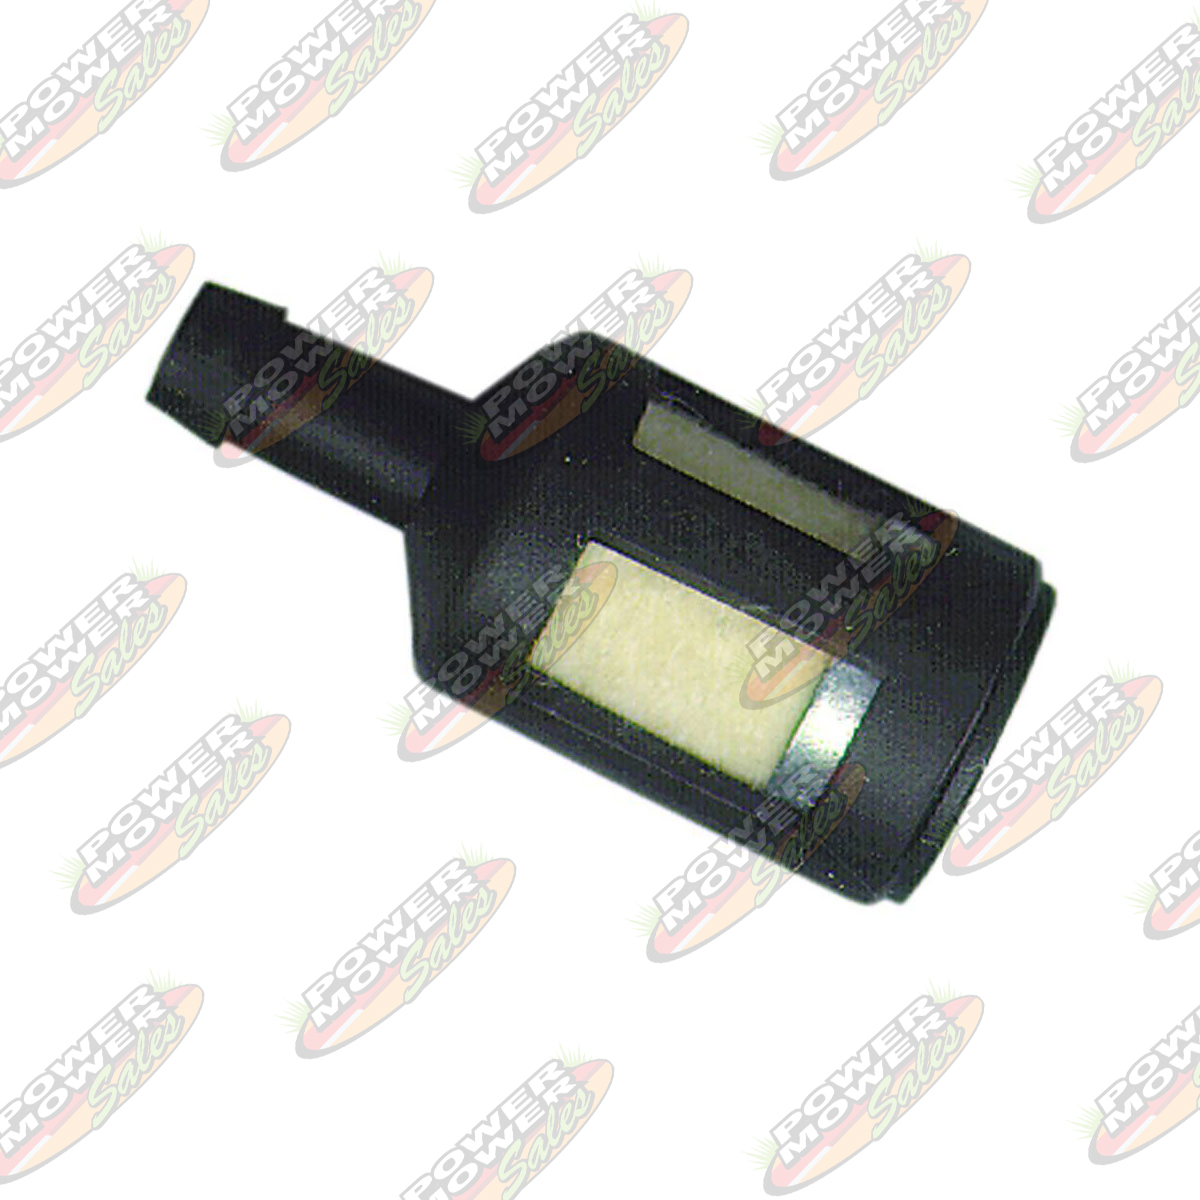 fuel filter / zama zf-2 | power mower sales quick view